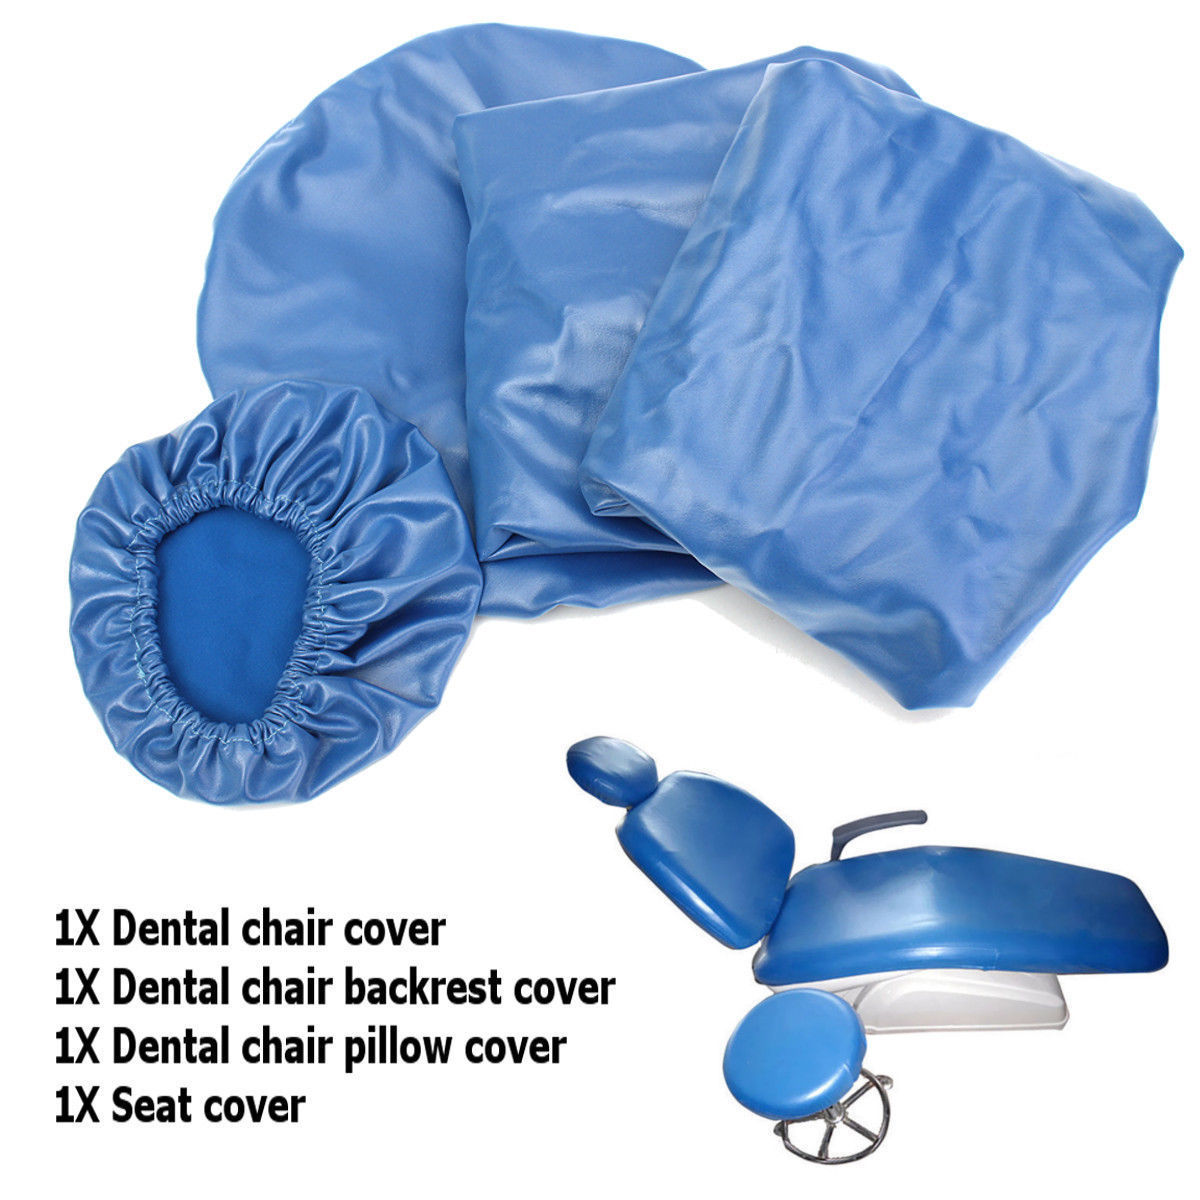 1 Set Dental PU Leather Unit Dental Chair Seat Cover Chair Cover Elastic Waterproof Protective Case Protector Dentist Equipment1 Set Dental PU Leather Unit Dental Chair Seat Cover Chair Cover Elastic Waterproof Protective Case Protector Dentist Equipment